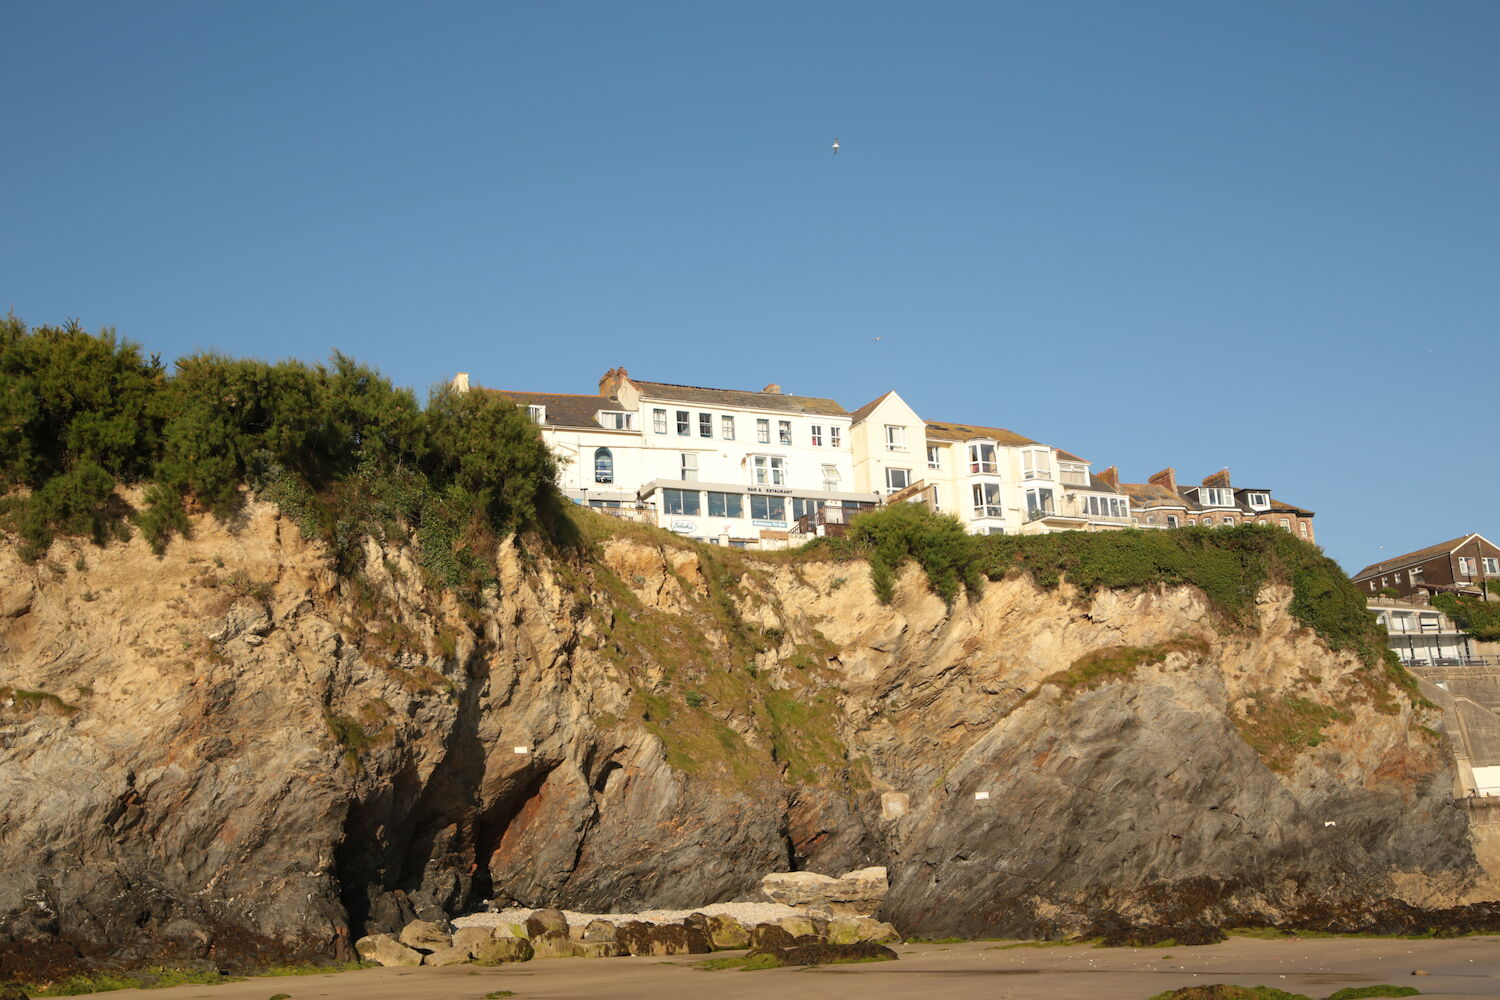 St. Christopher's Inn - Newquay, Newquay